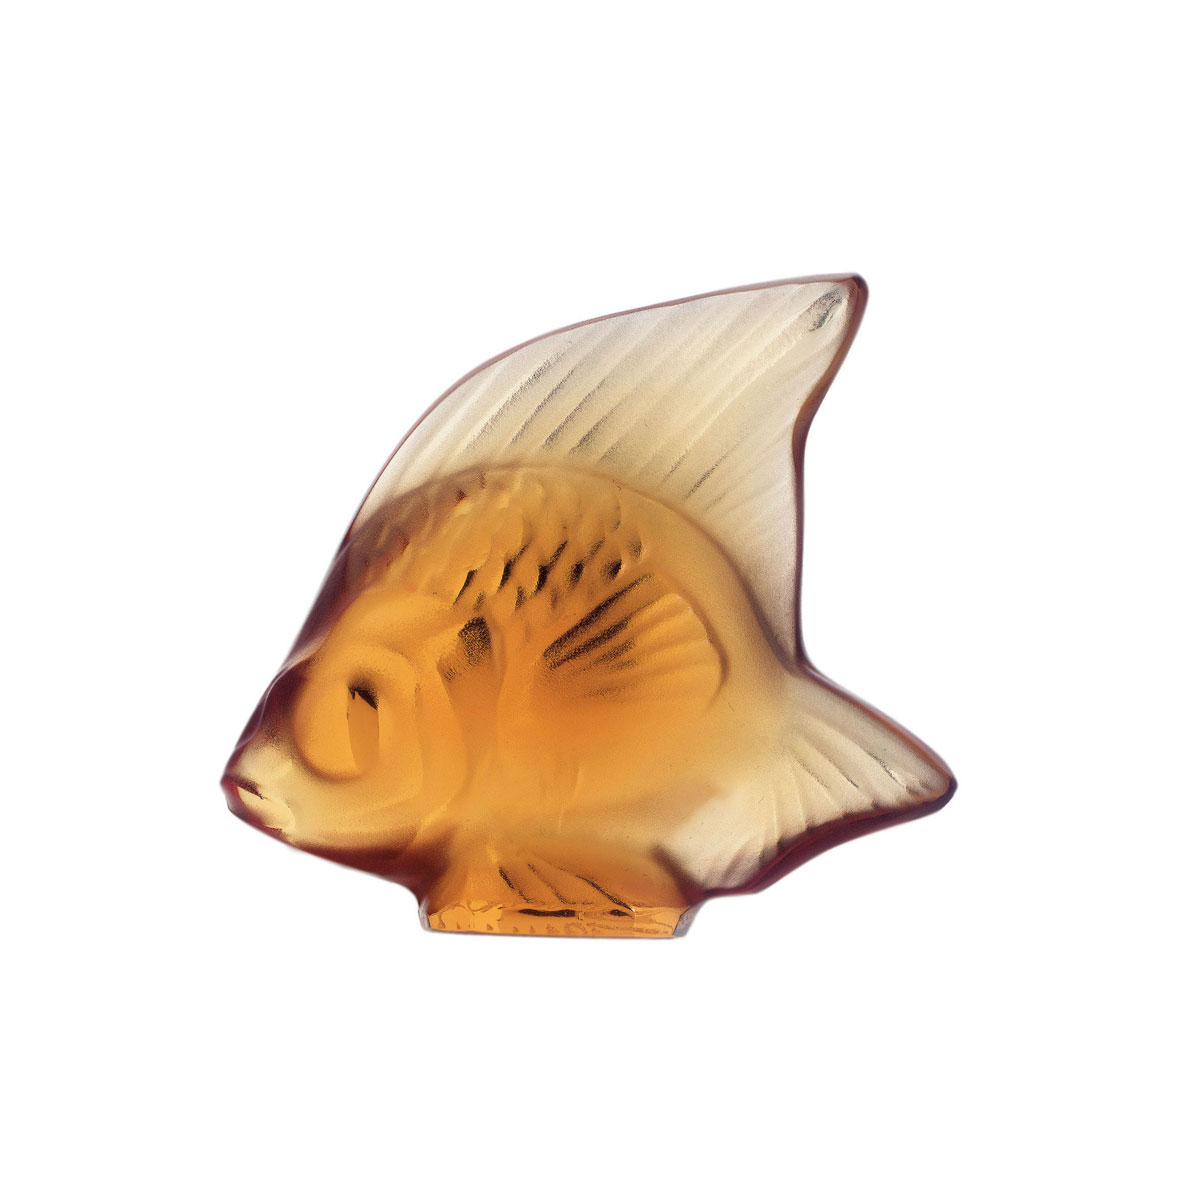 Lalique Crystal, Amber Fish Sculpture